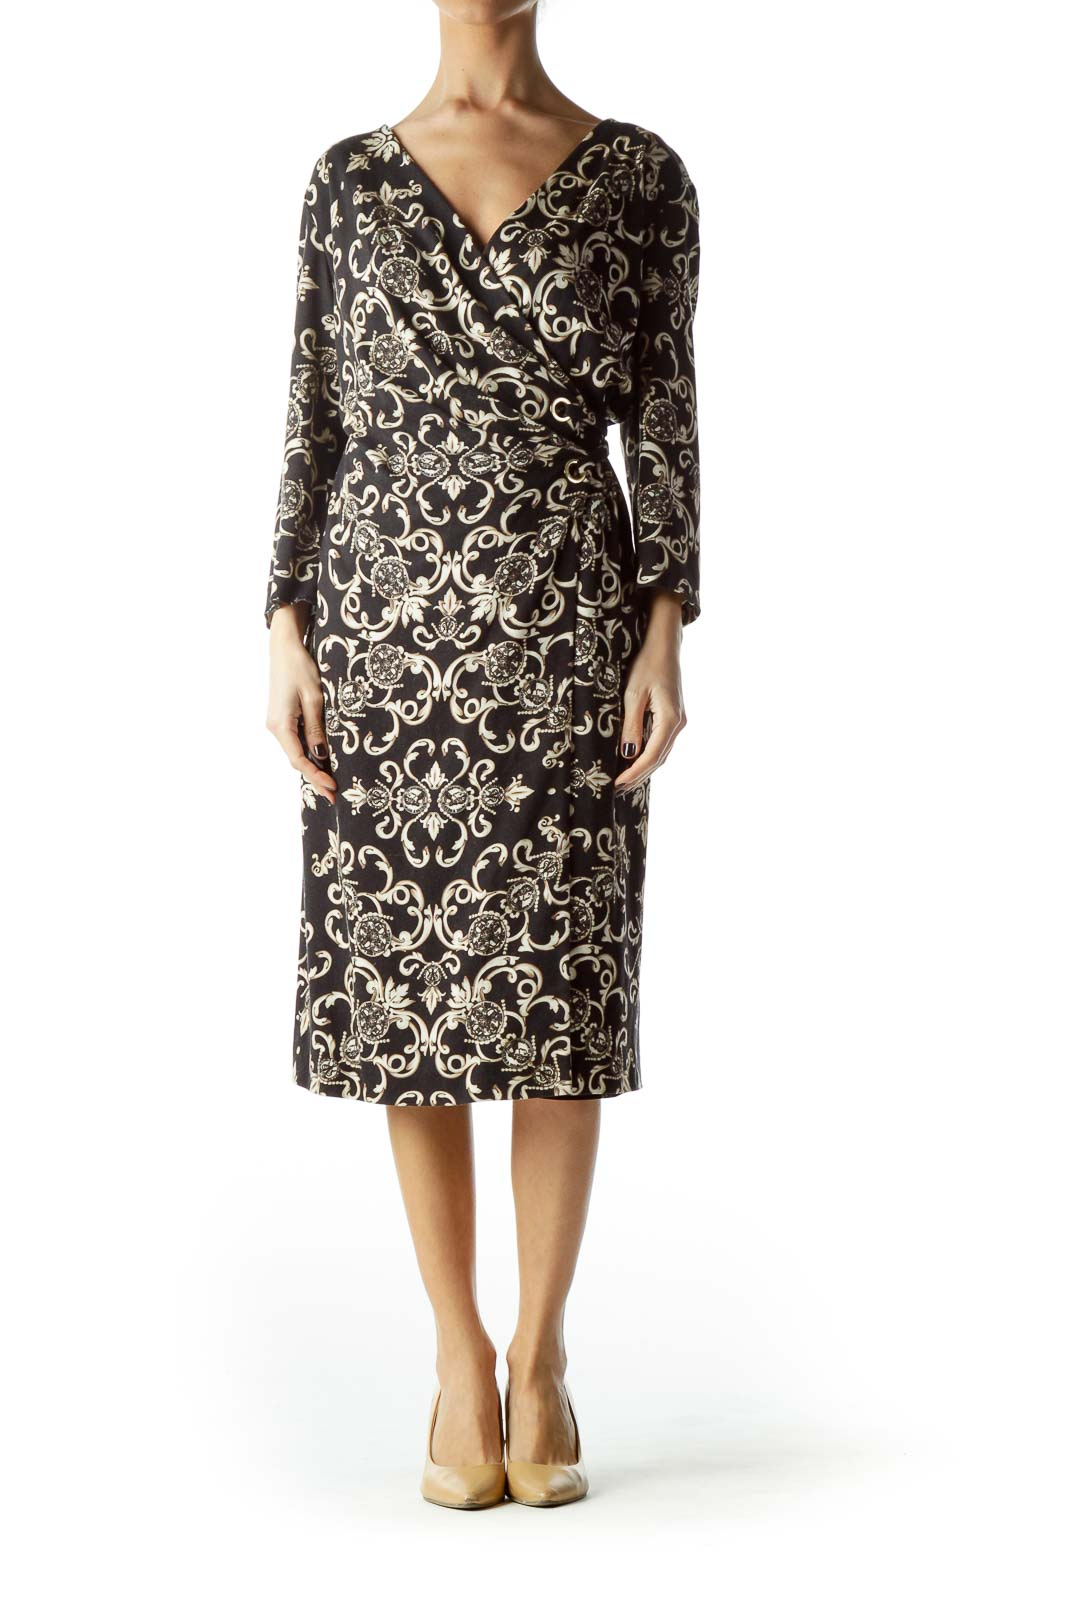 Black Cream and Gold Print Wrap Dress